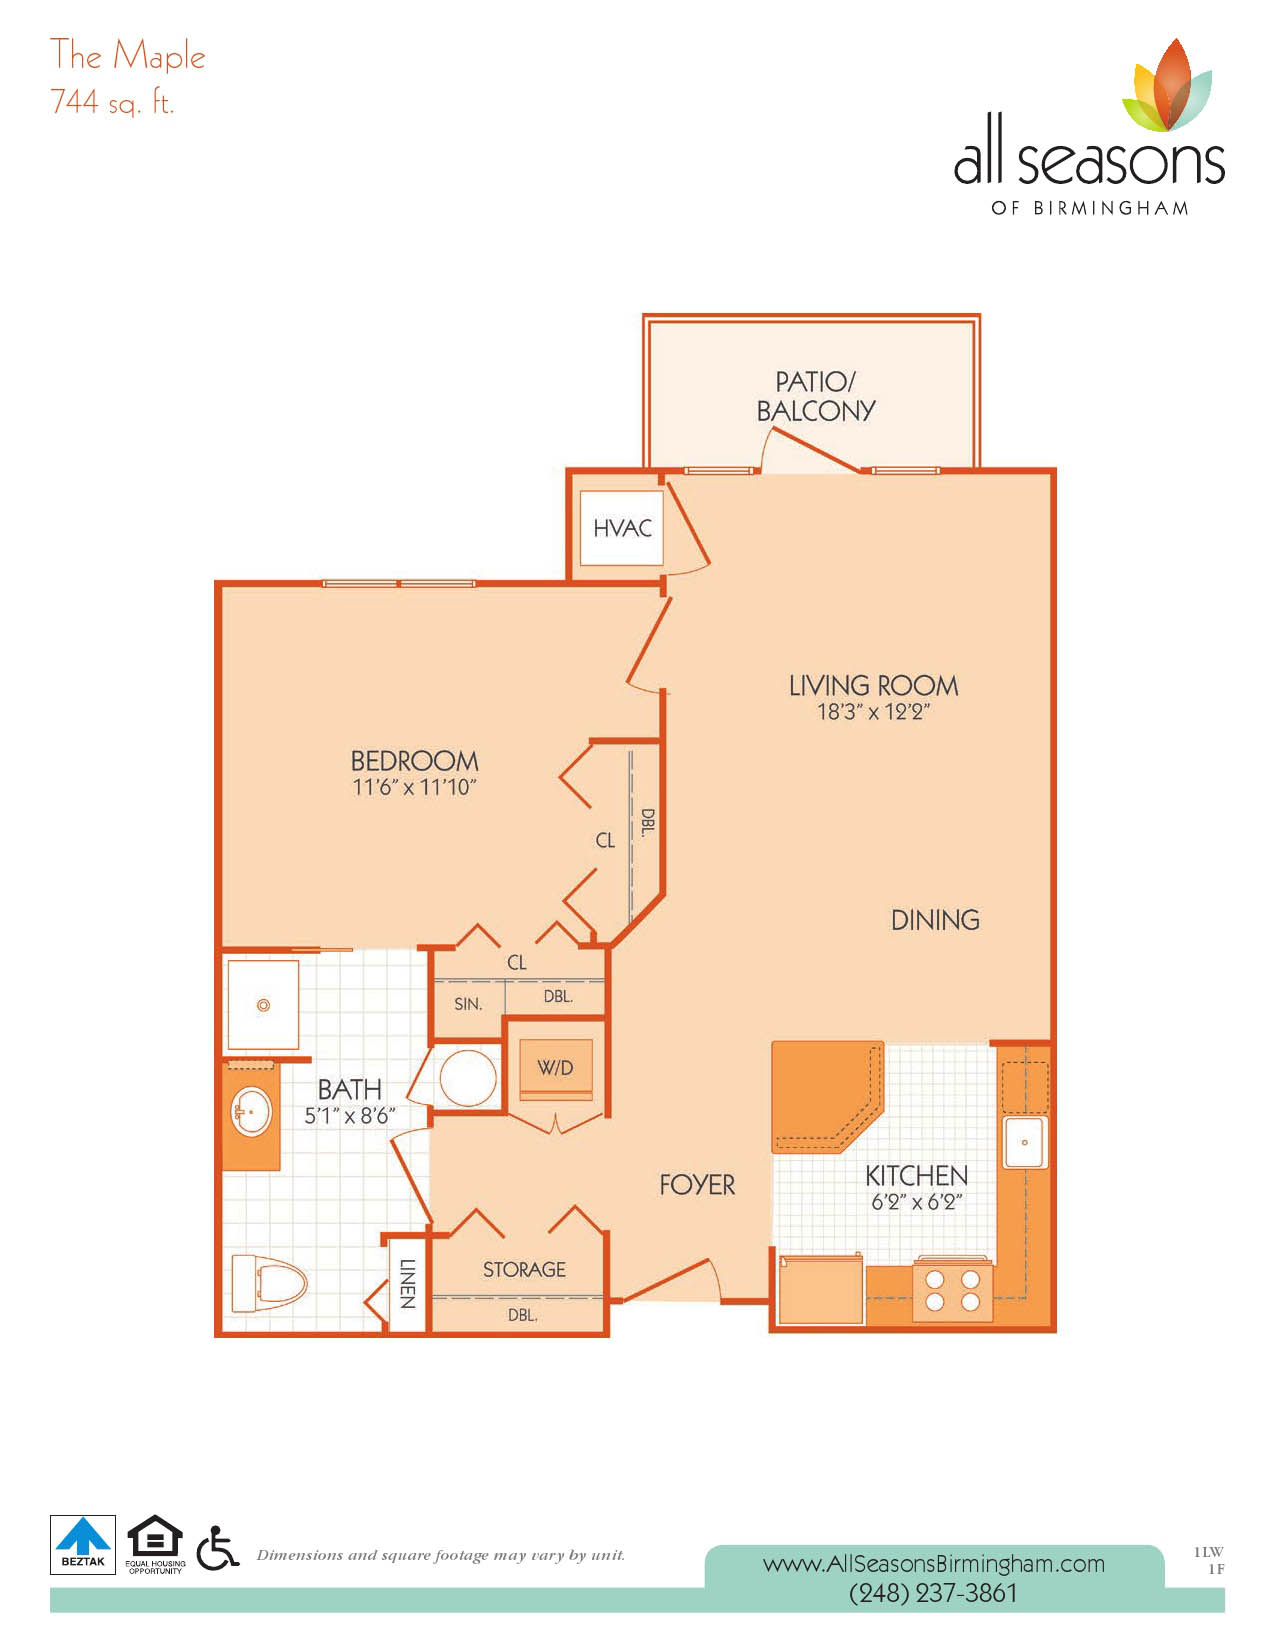 The Maple floor plan at All Seasons of Birmingham